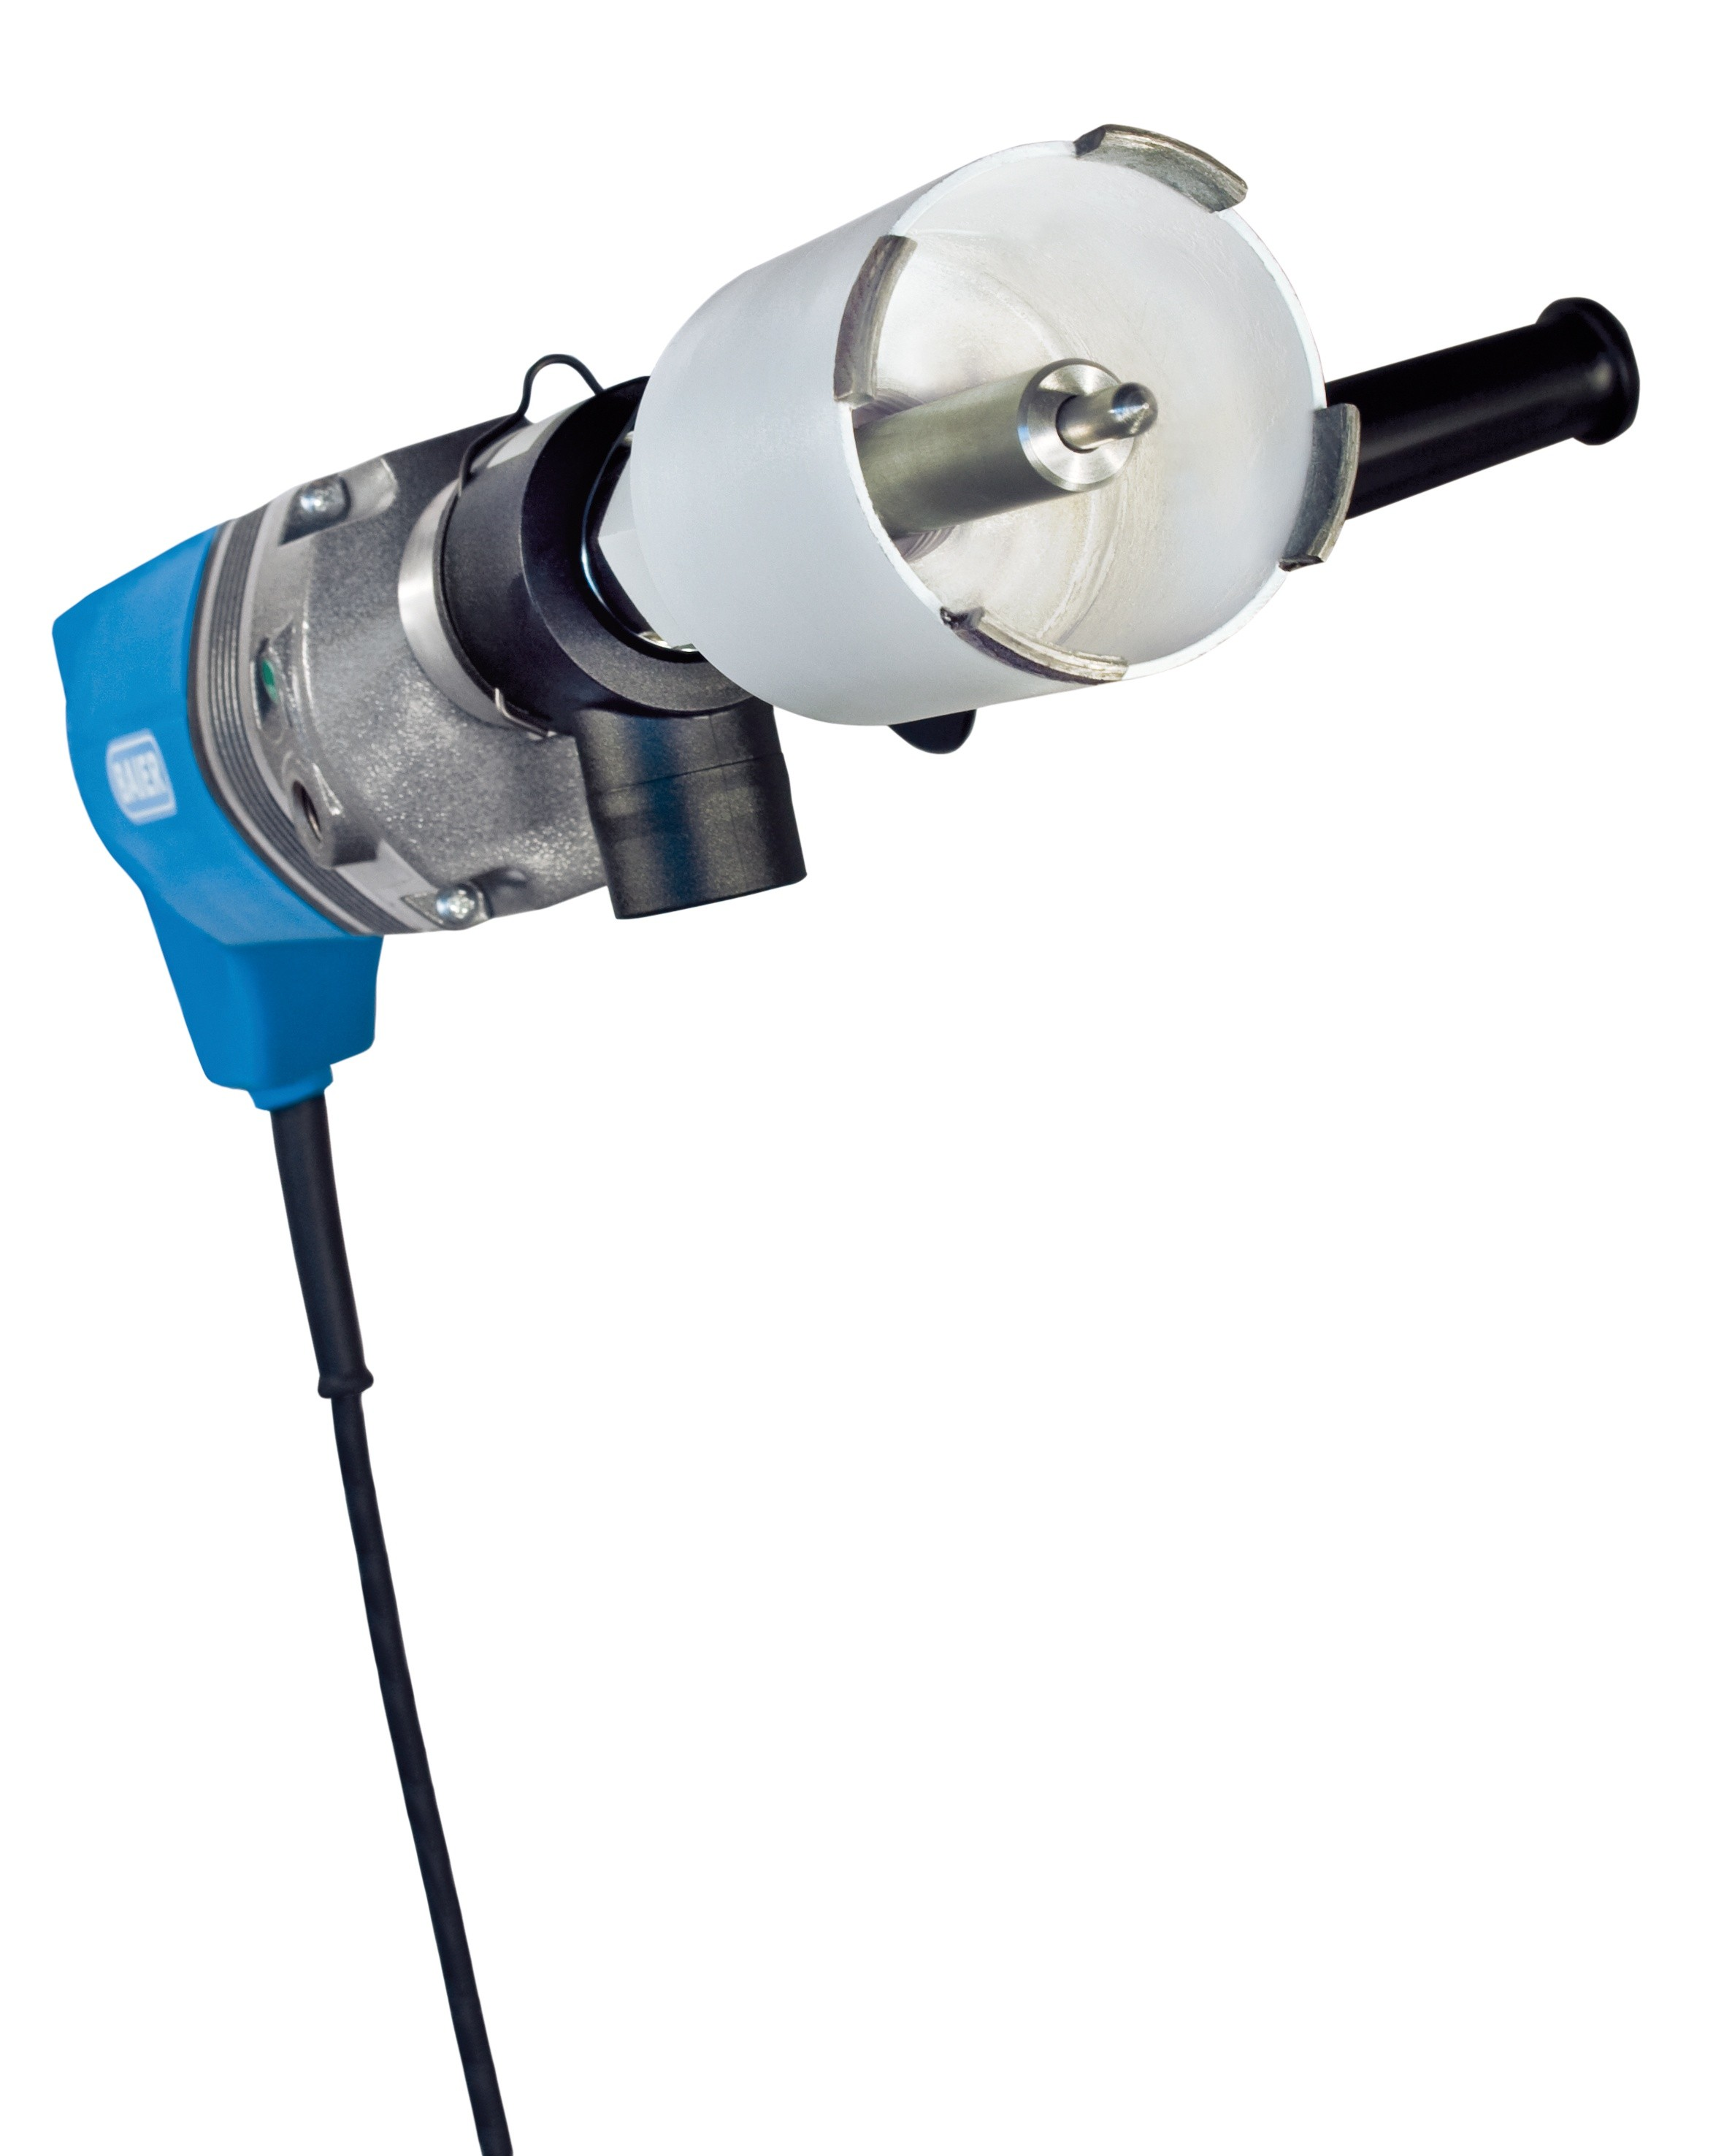 Otto Baier to showcase a new drill motor at Bauma